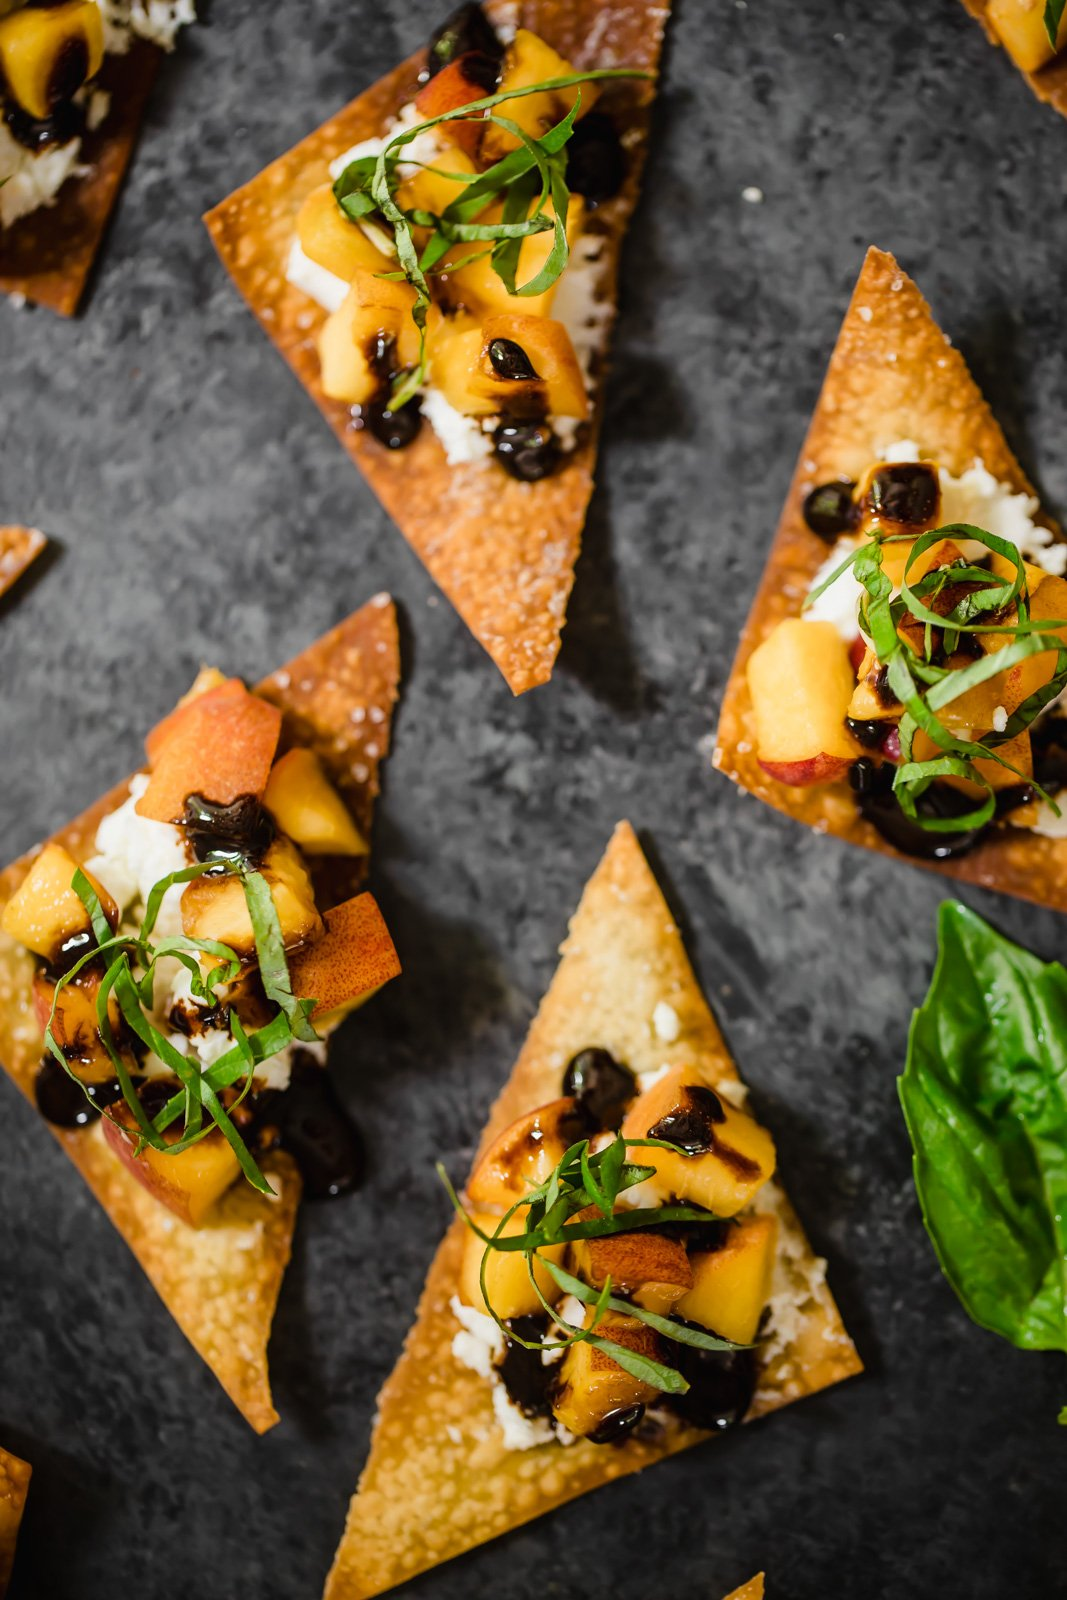 Juicy fresh peaches, creamy goat cheese and a balsamic reduction piled on a delicious baked wonton bites. The perfect summer appetizer ready in about 15 minutes!